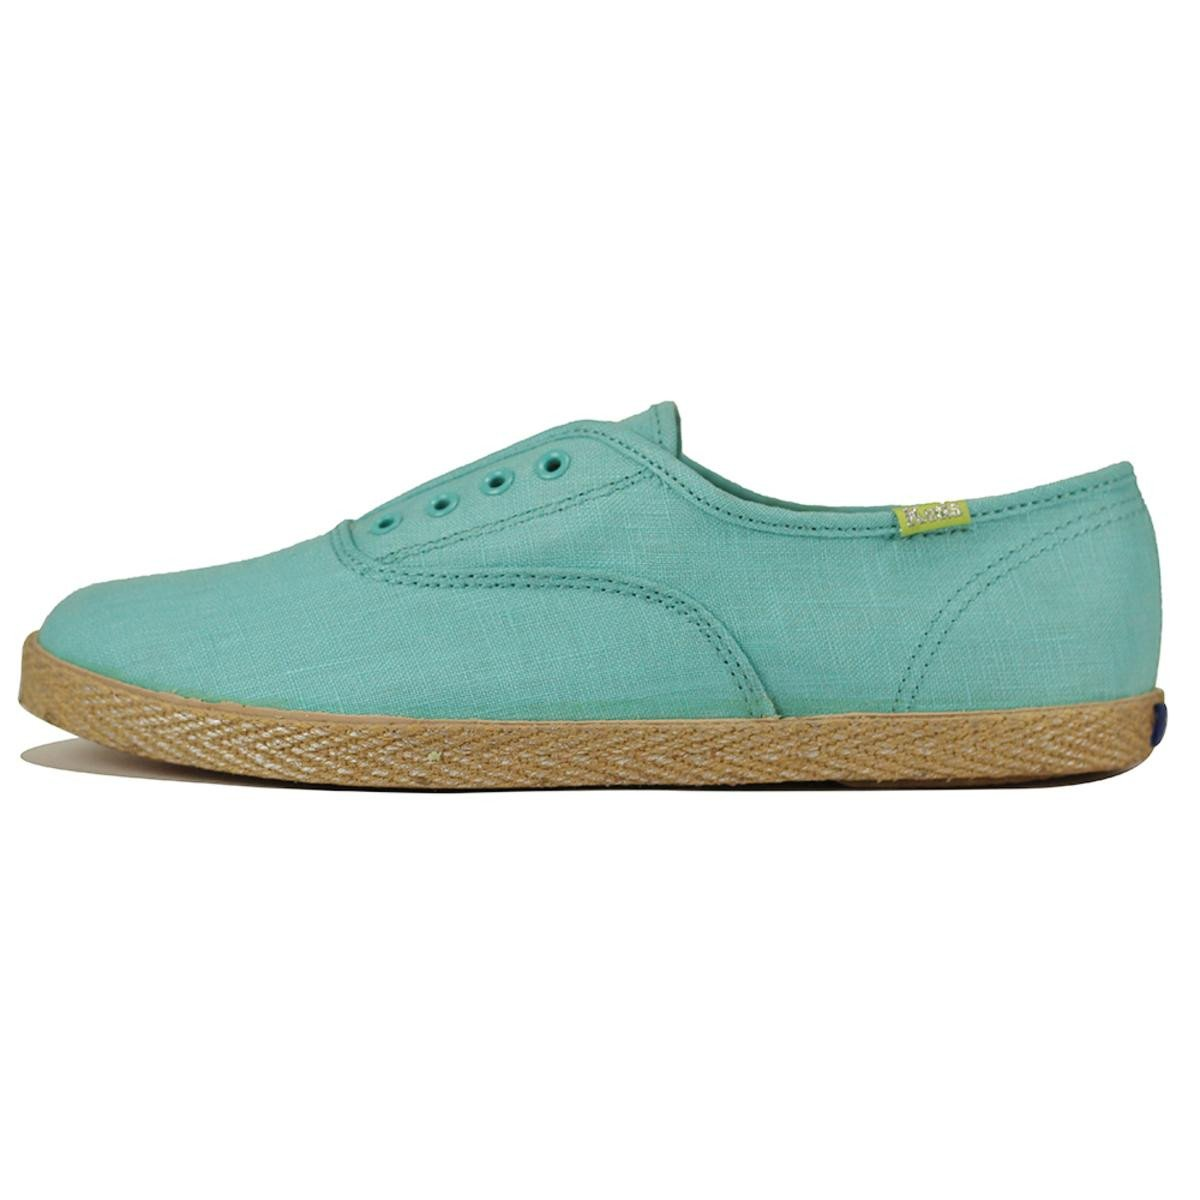 Keds for Women: Champ Jute Aqua Sneakers